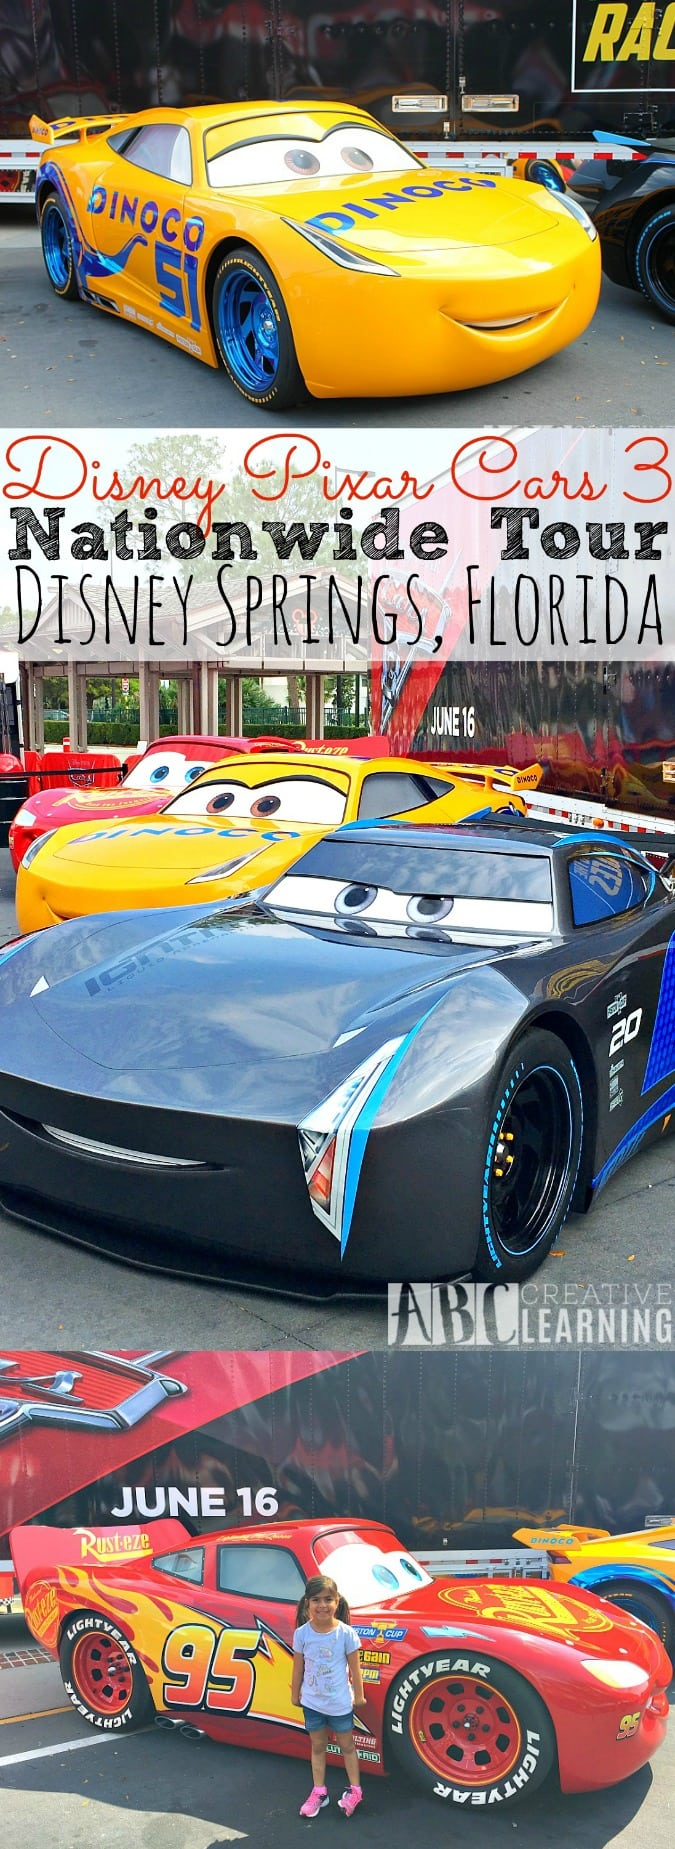 Disney Pixar Cars 3 NationWide Tour is going around the United States and their first stop is at Orlando, Florida's Disney Springs! Check out all the details and activities for the kiddos! Plus, meet your favorite Cars 3 characters like Lighting McQueen and newest character Cruz!- simplytodaylife.com